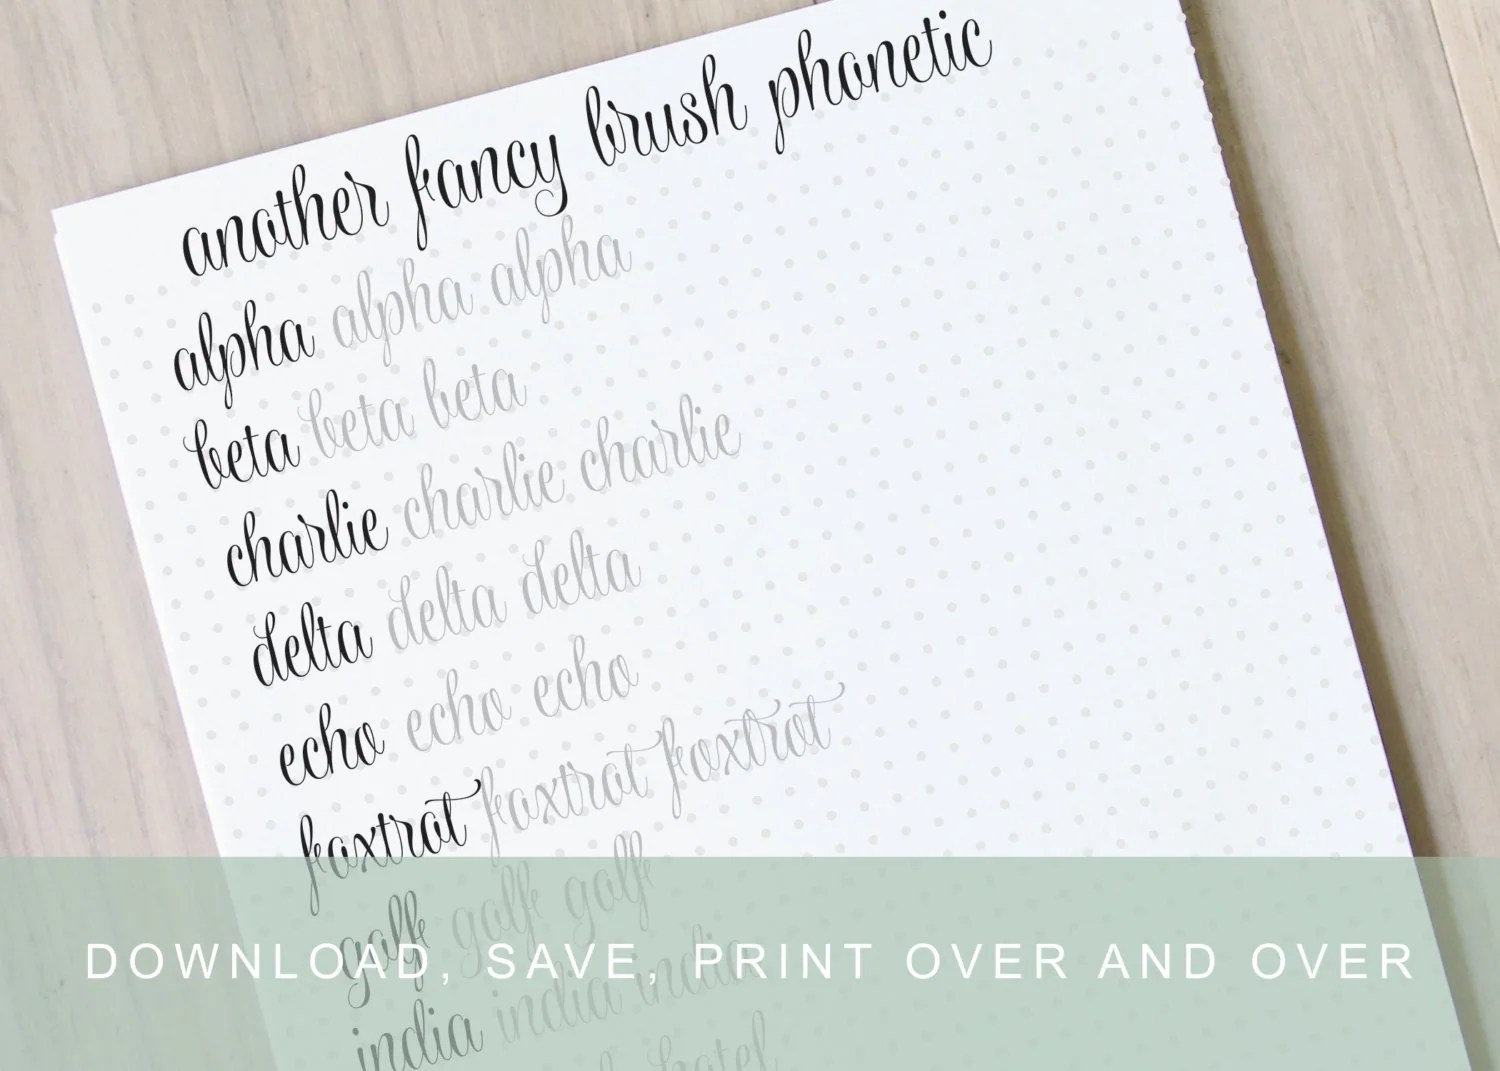 Another Fancy Brush Lettering Worksheet Calligraphy Tutorial Alphabet Practice Guides Learn